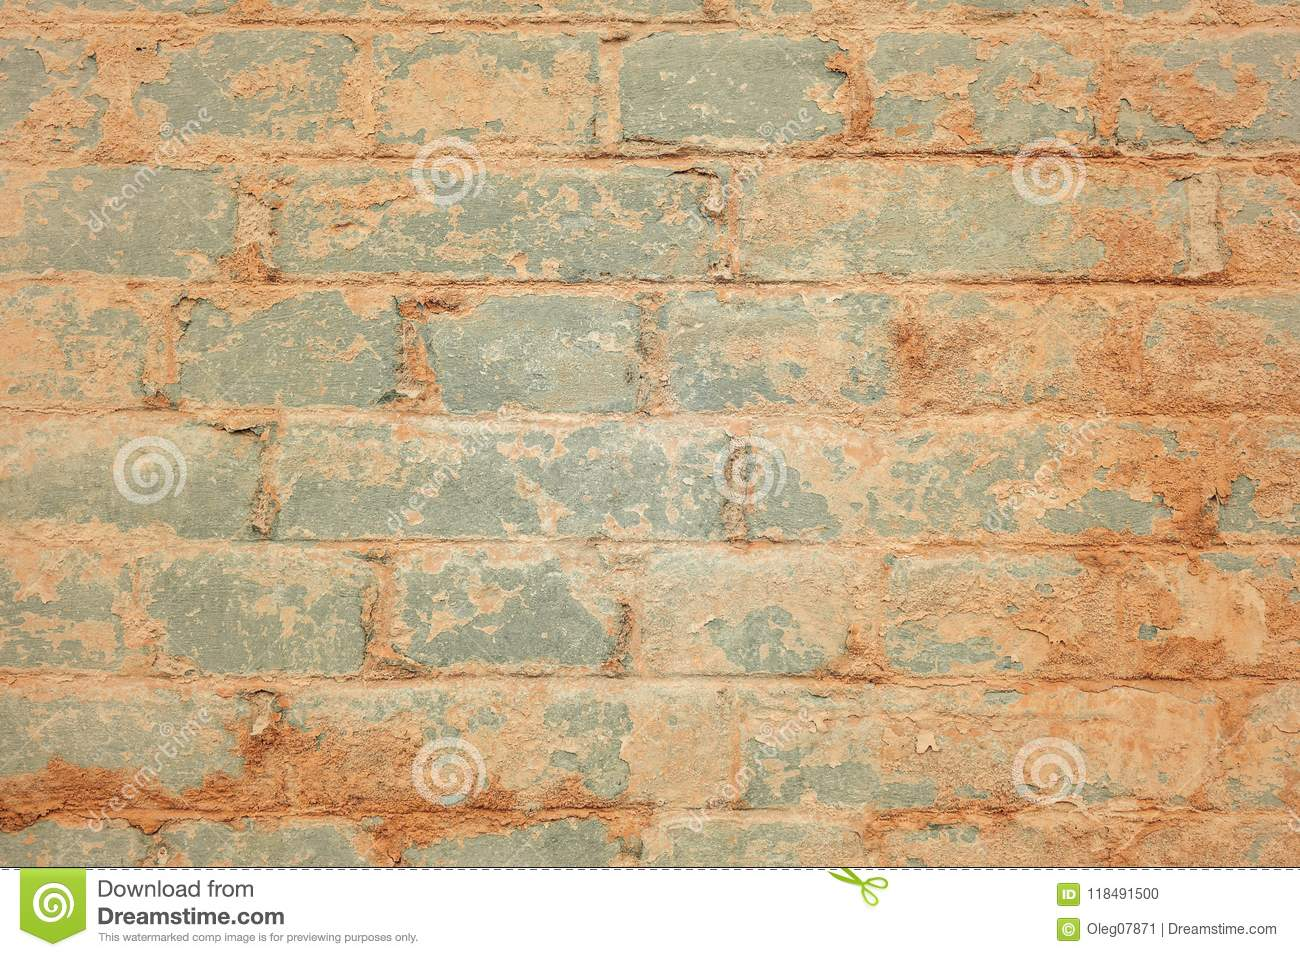 Brick wall. stock photo. Image of paint, color, stonework - 118491500